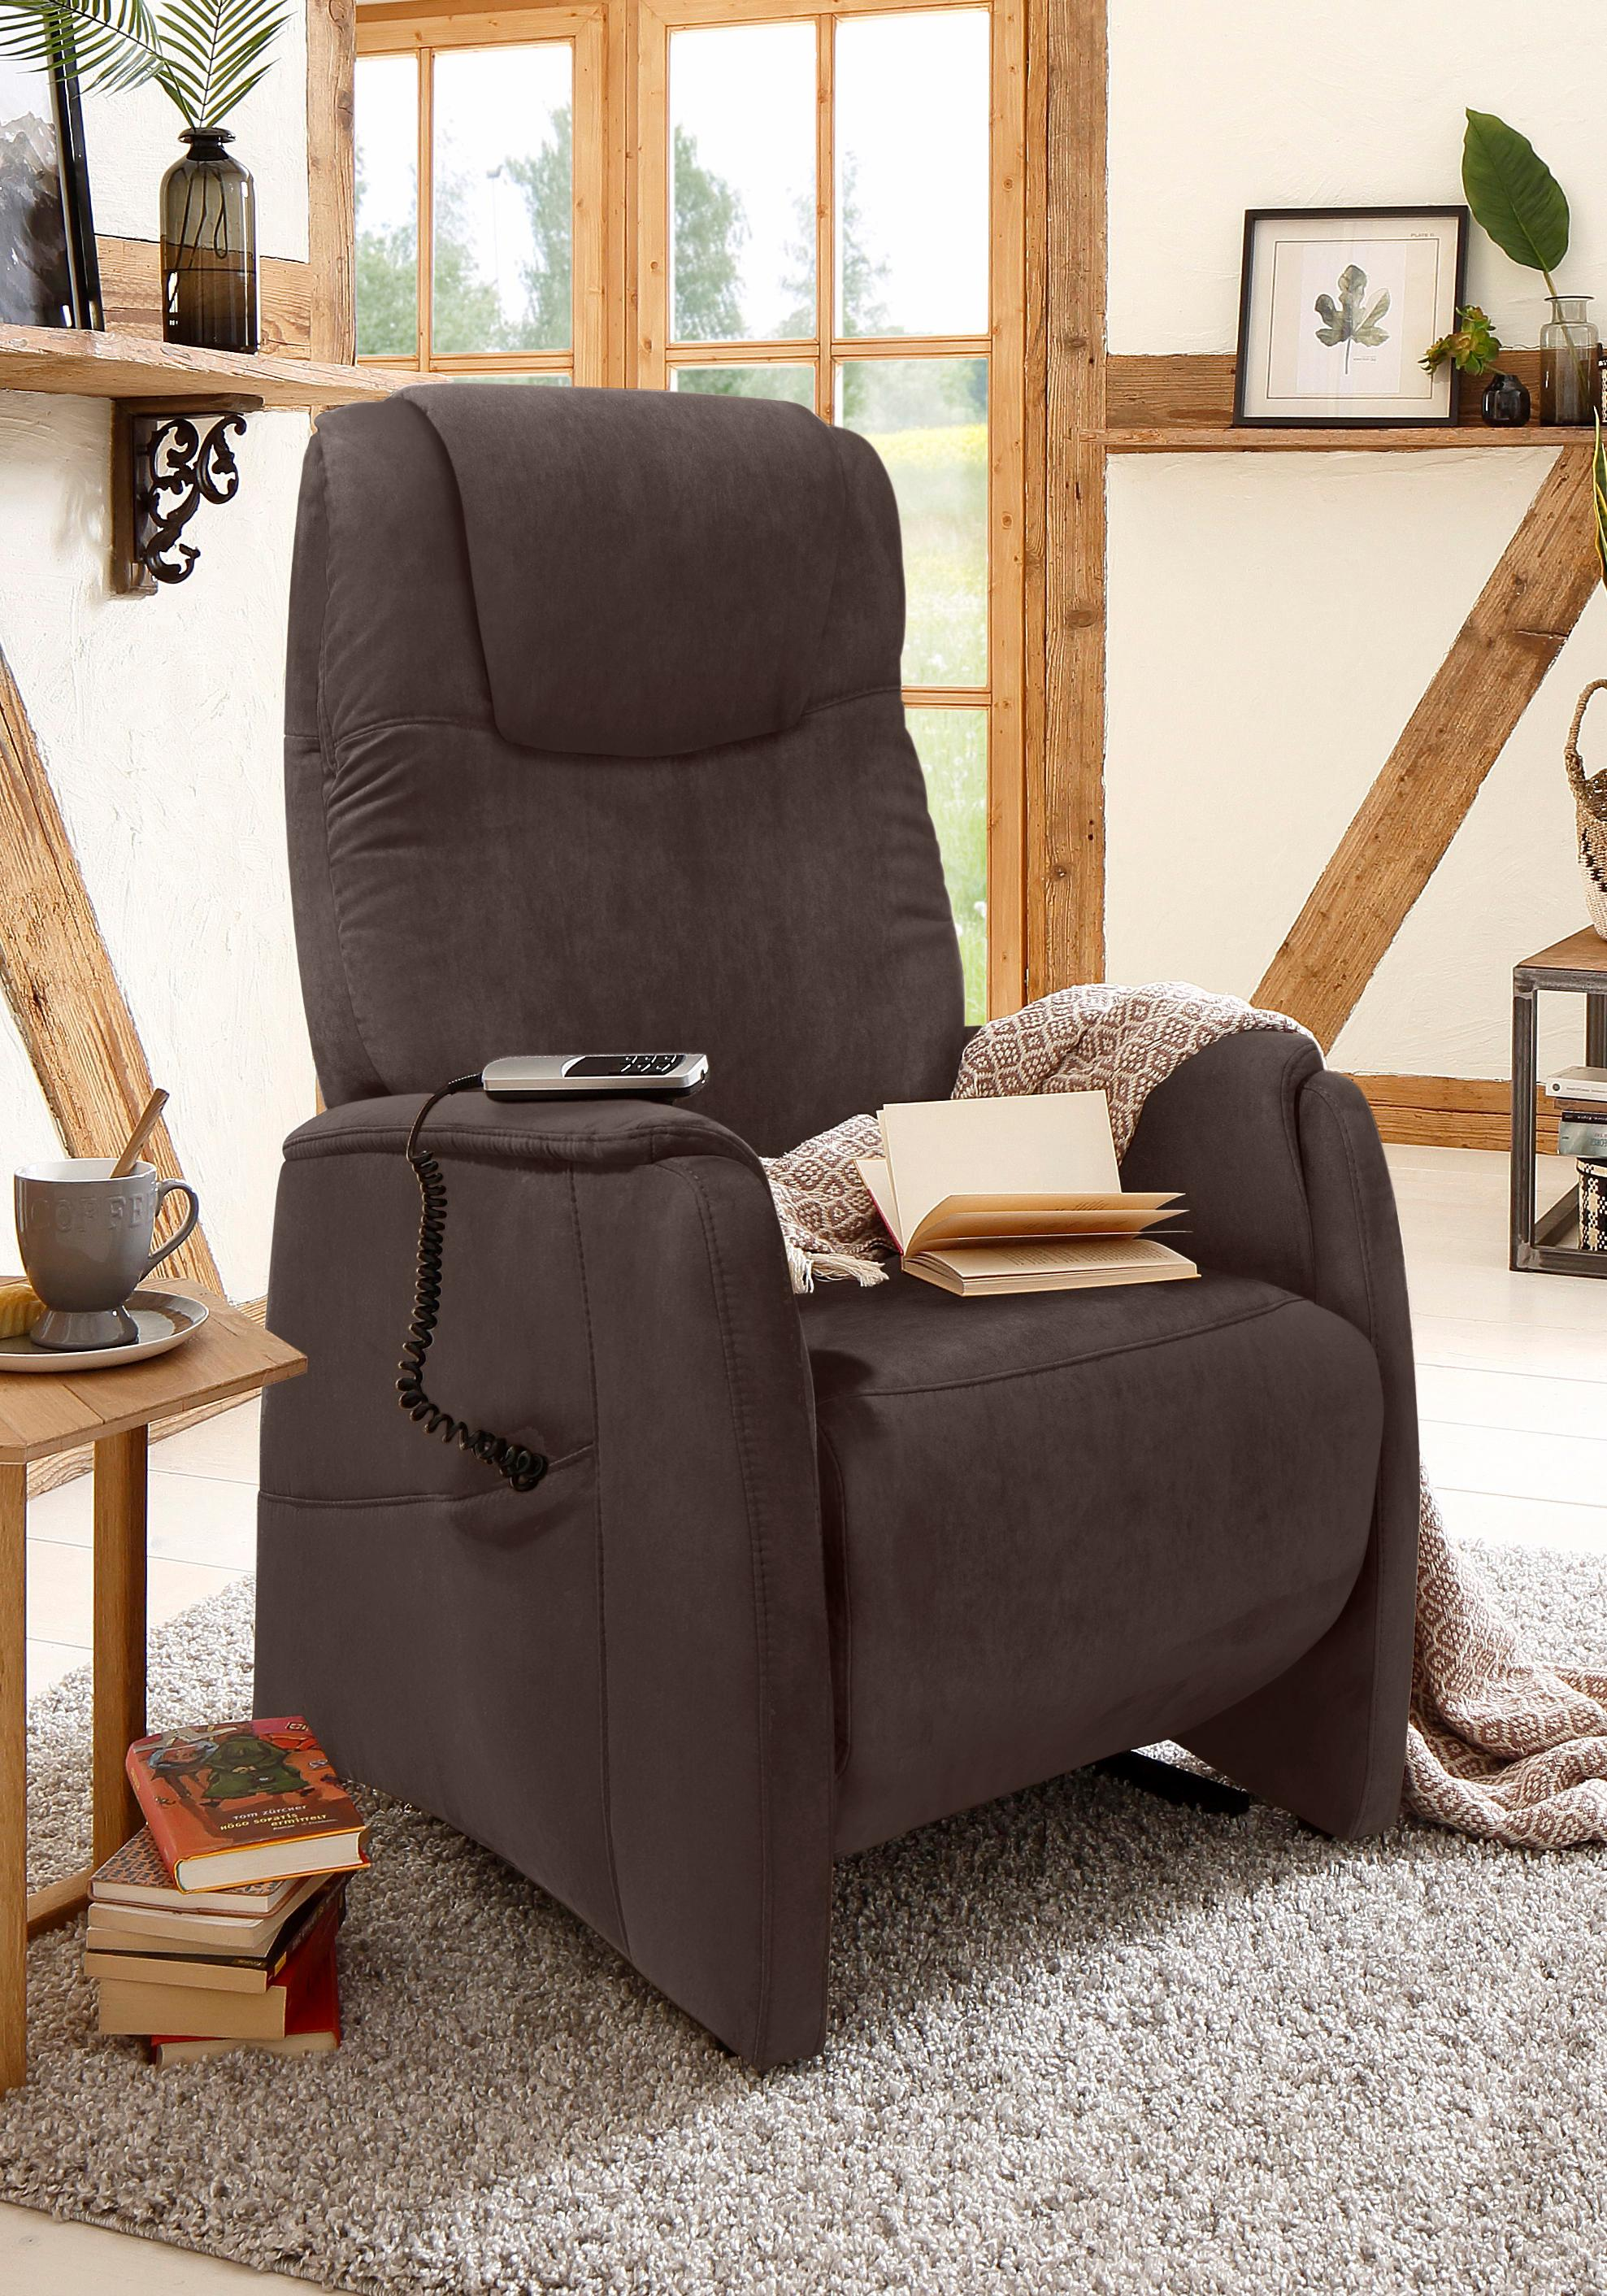 Home affaire TV-Sessel »Mamba« | Wohnzimmer > Sessel > Fernsehsessel | home affaire